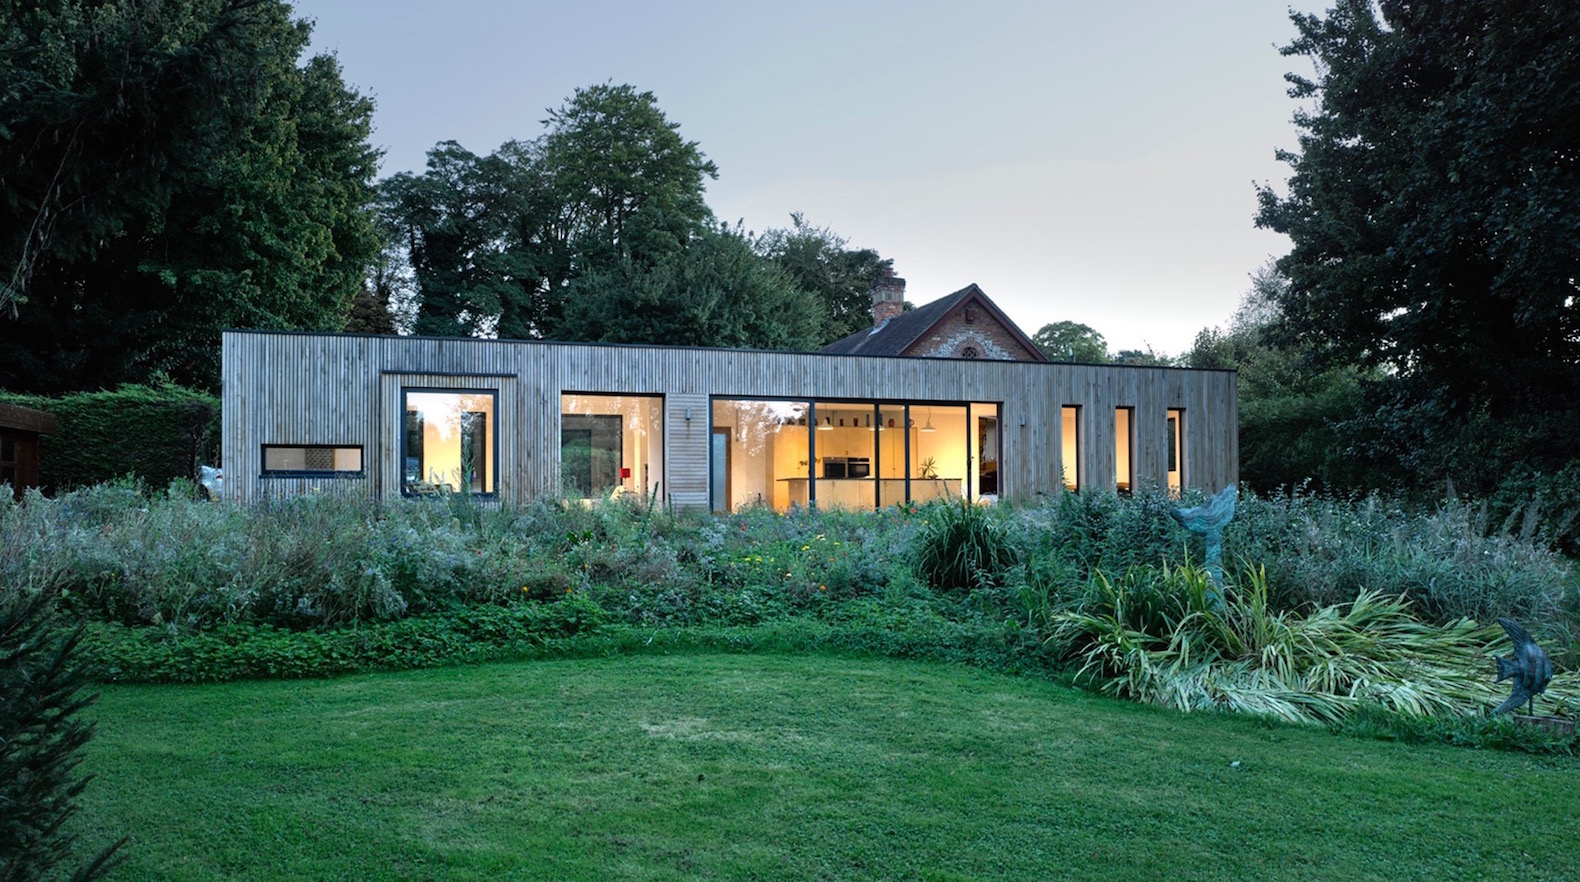 Beautiful prefab box is a modern light-filled extension to a historic barn